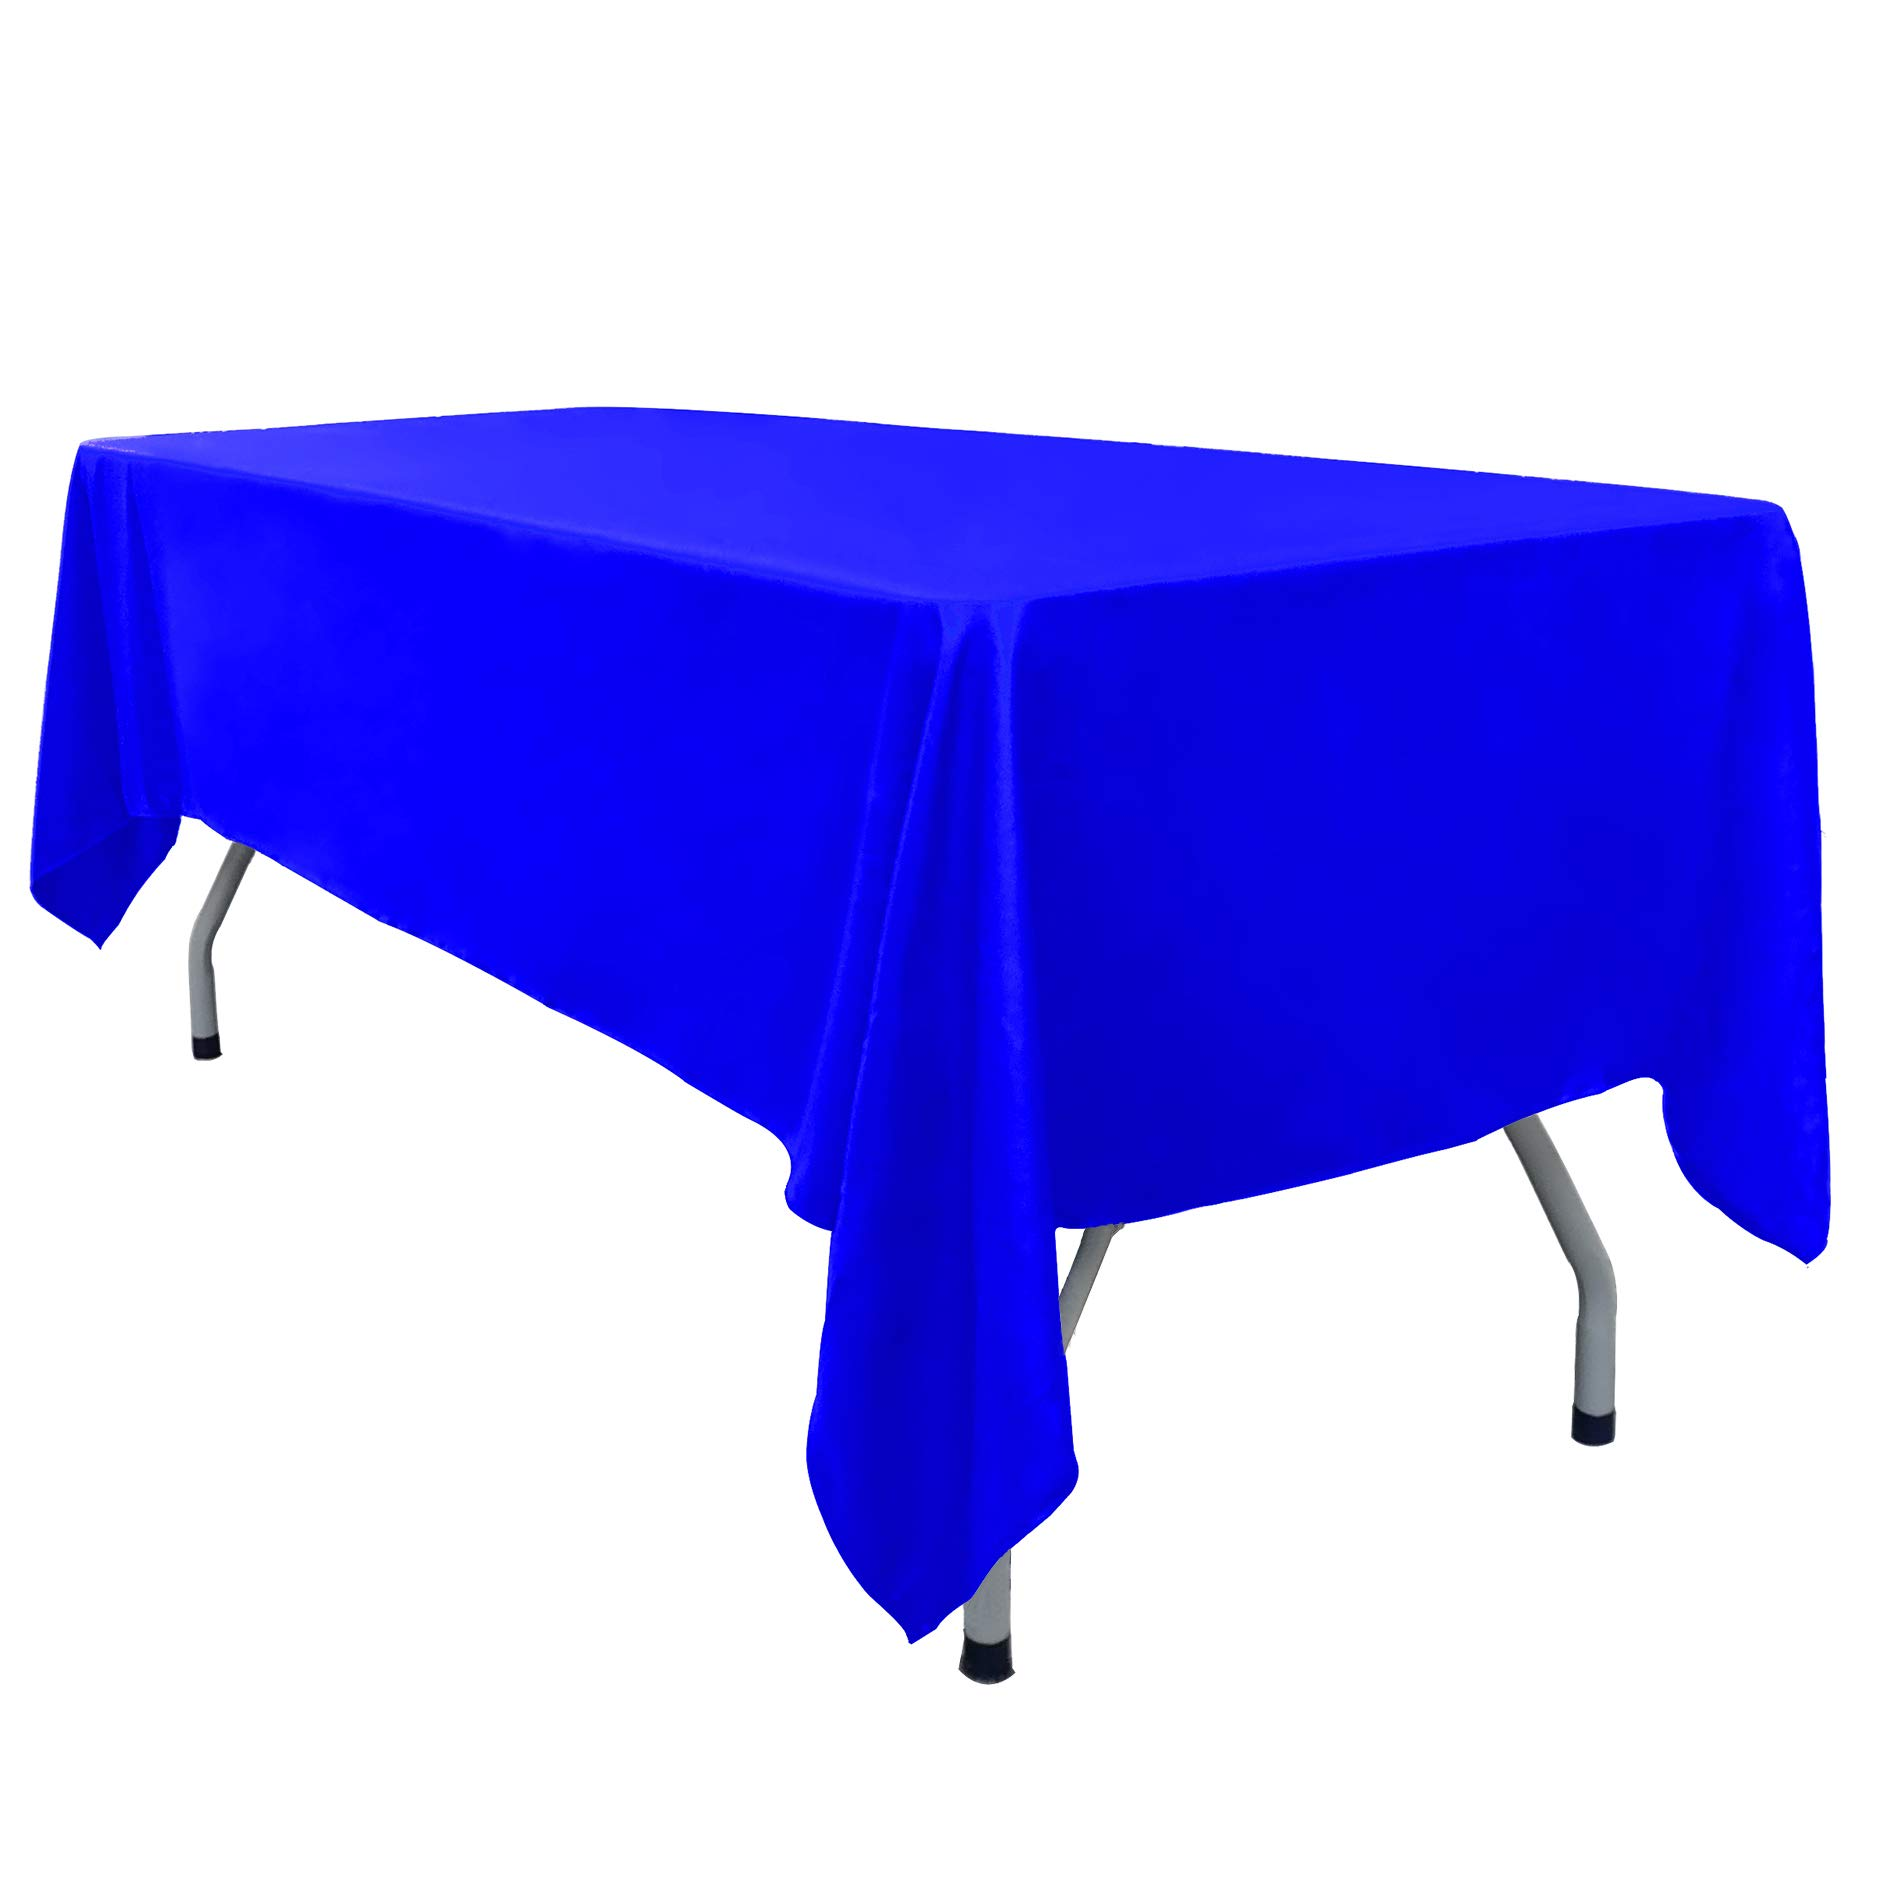 DYX Rectangular Tablecloth - 60 x102 Inch - Nave Blue Rectangular Table Cloth for 6 Foot Table in Polyester - Great for Wedding Restaurant Party Banquet Thanksgiving Reuseable